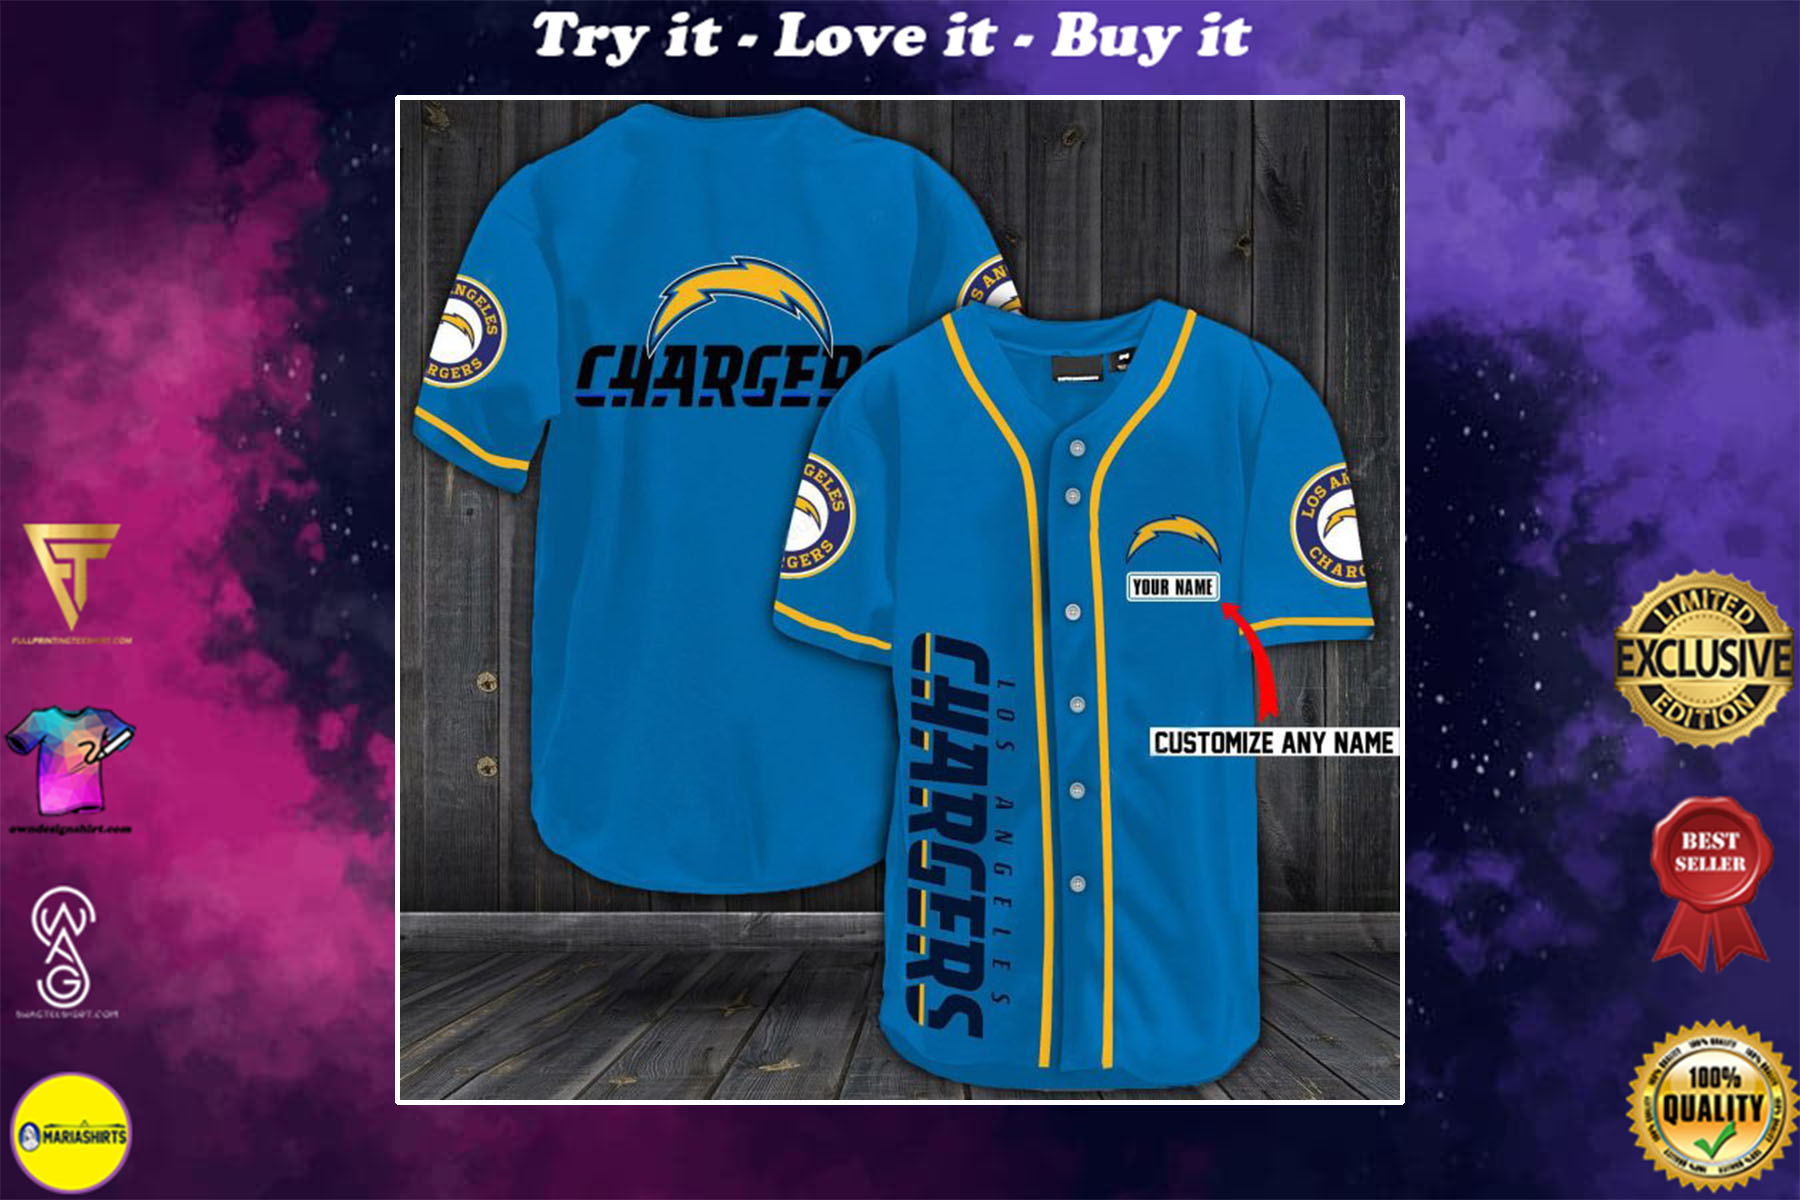 [special edition] personalized name jersey los angeles chargers shirt - maria